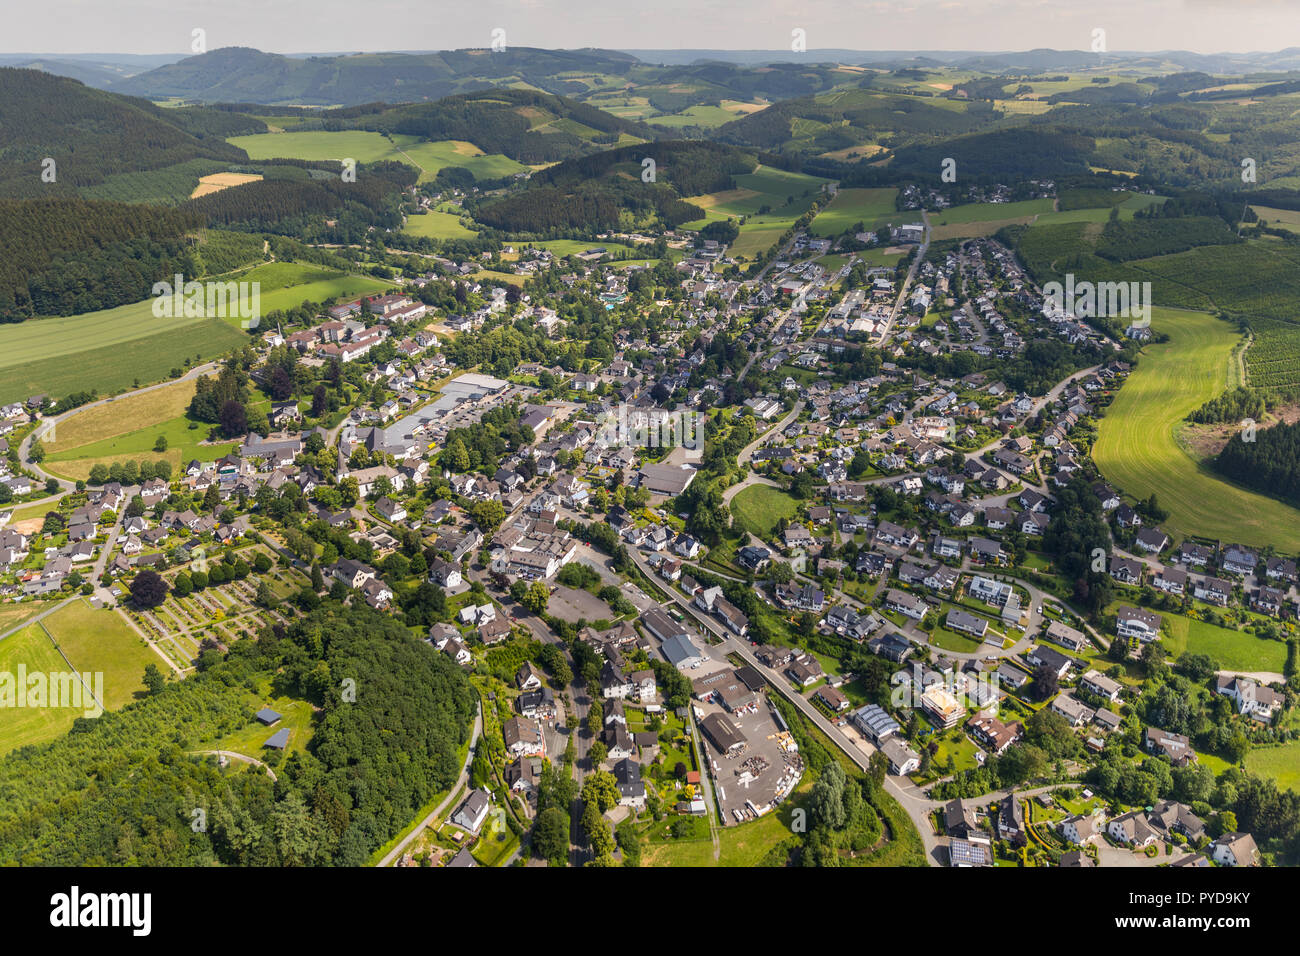 Aerial view, overview of Eslohe seen from the west, Eslohe, Sauerland, North Rhine-Westphalia, Germany, DEU, Europe, birds-eyes view, aerial view, aer - Stock Image